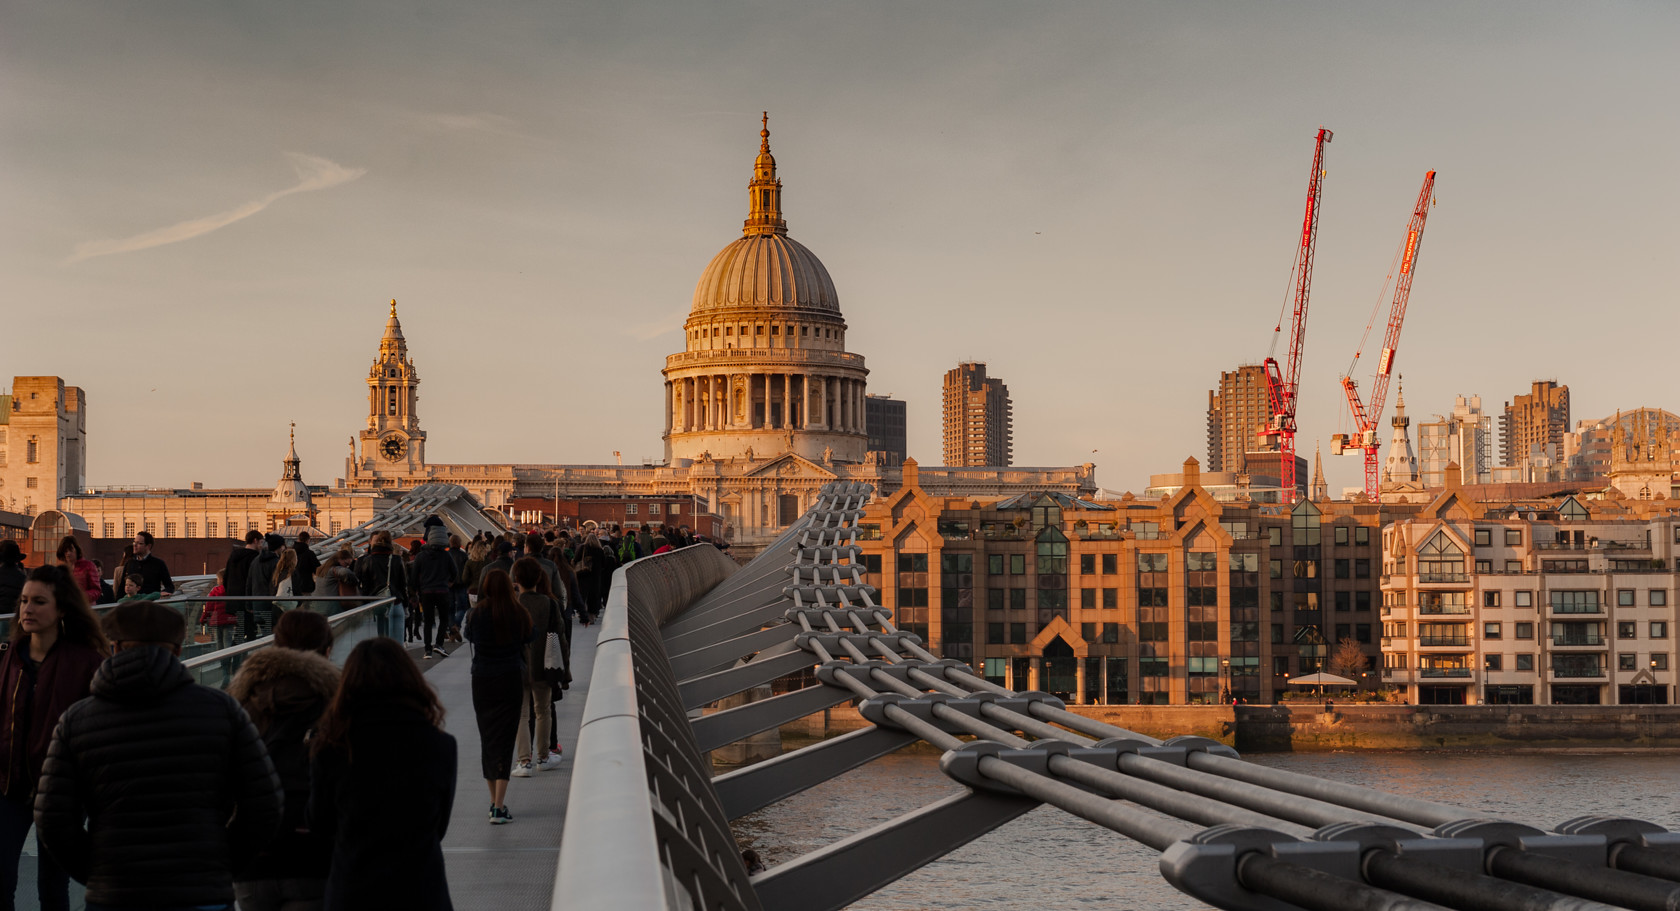 st pauls and the cranes (ref ukb 5) 